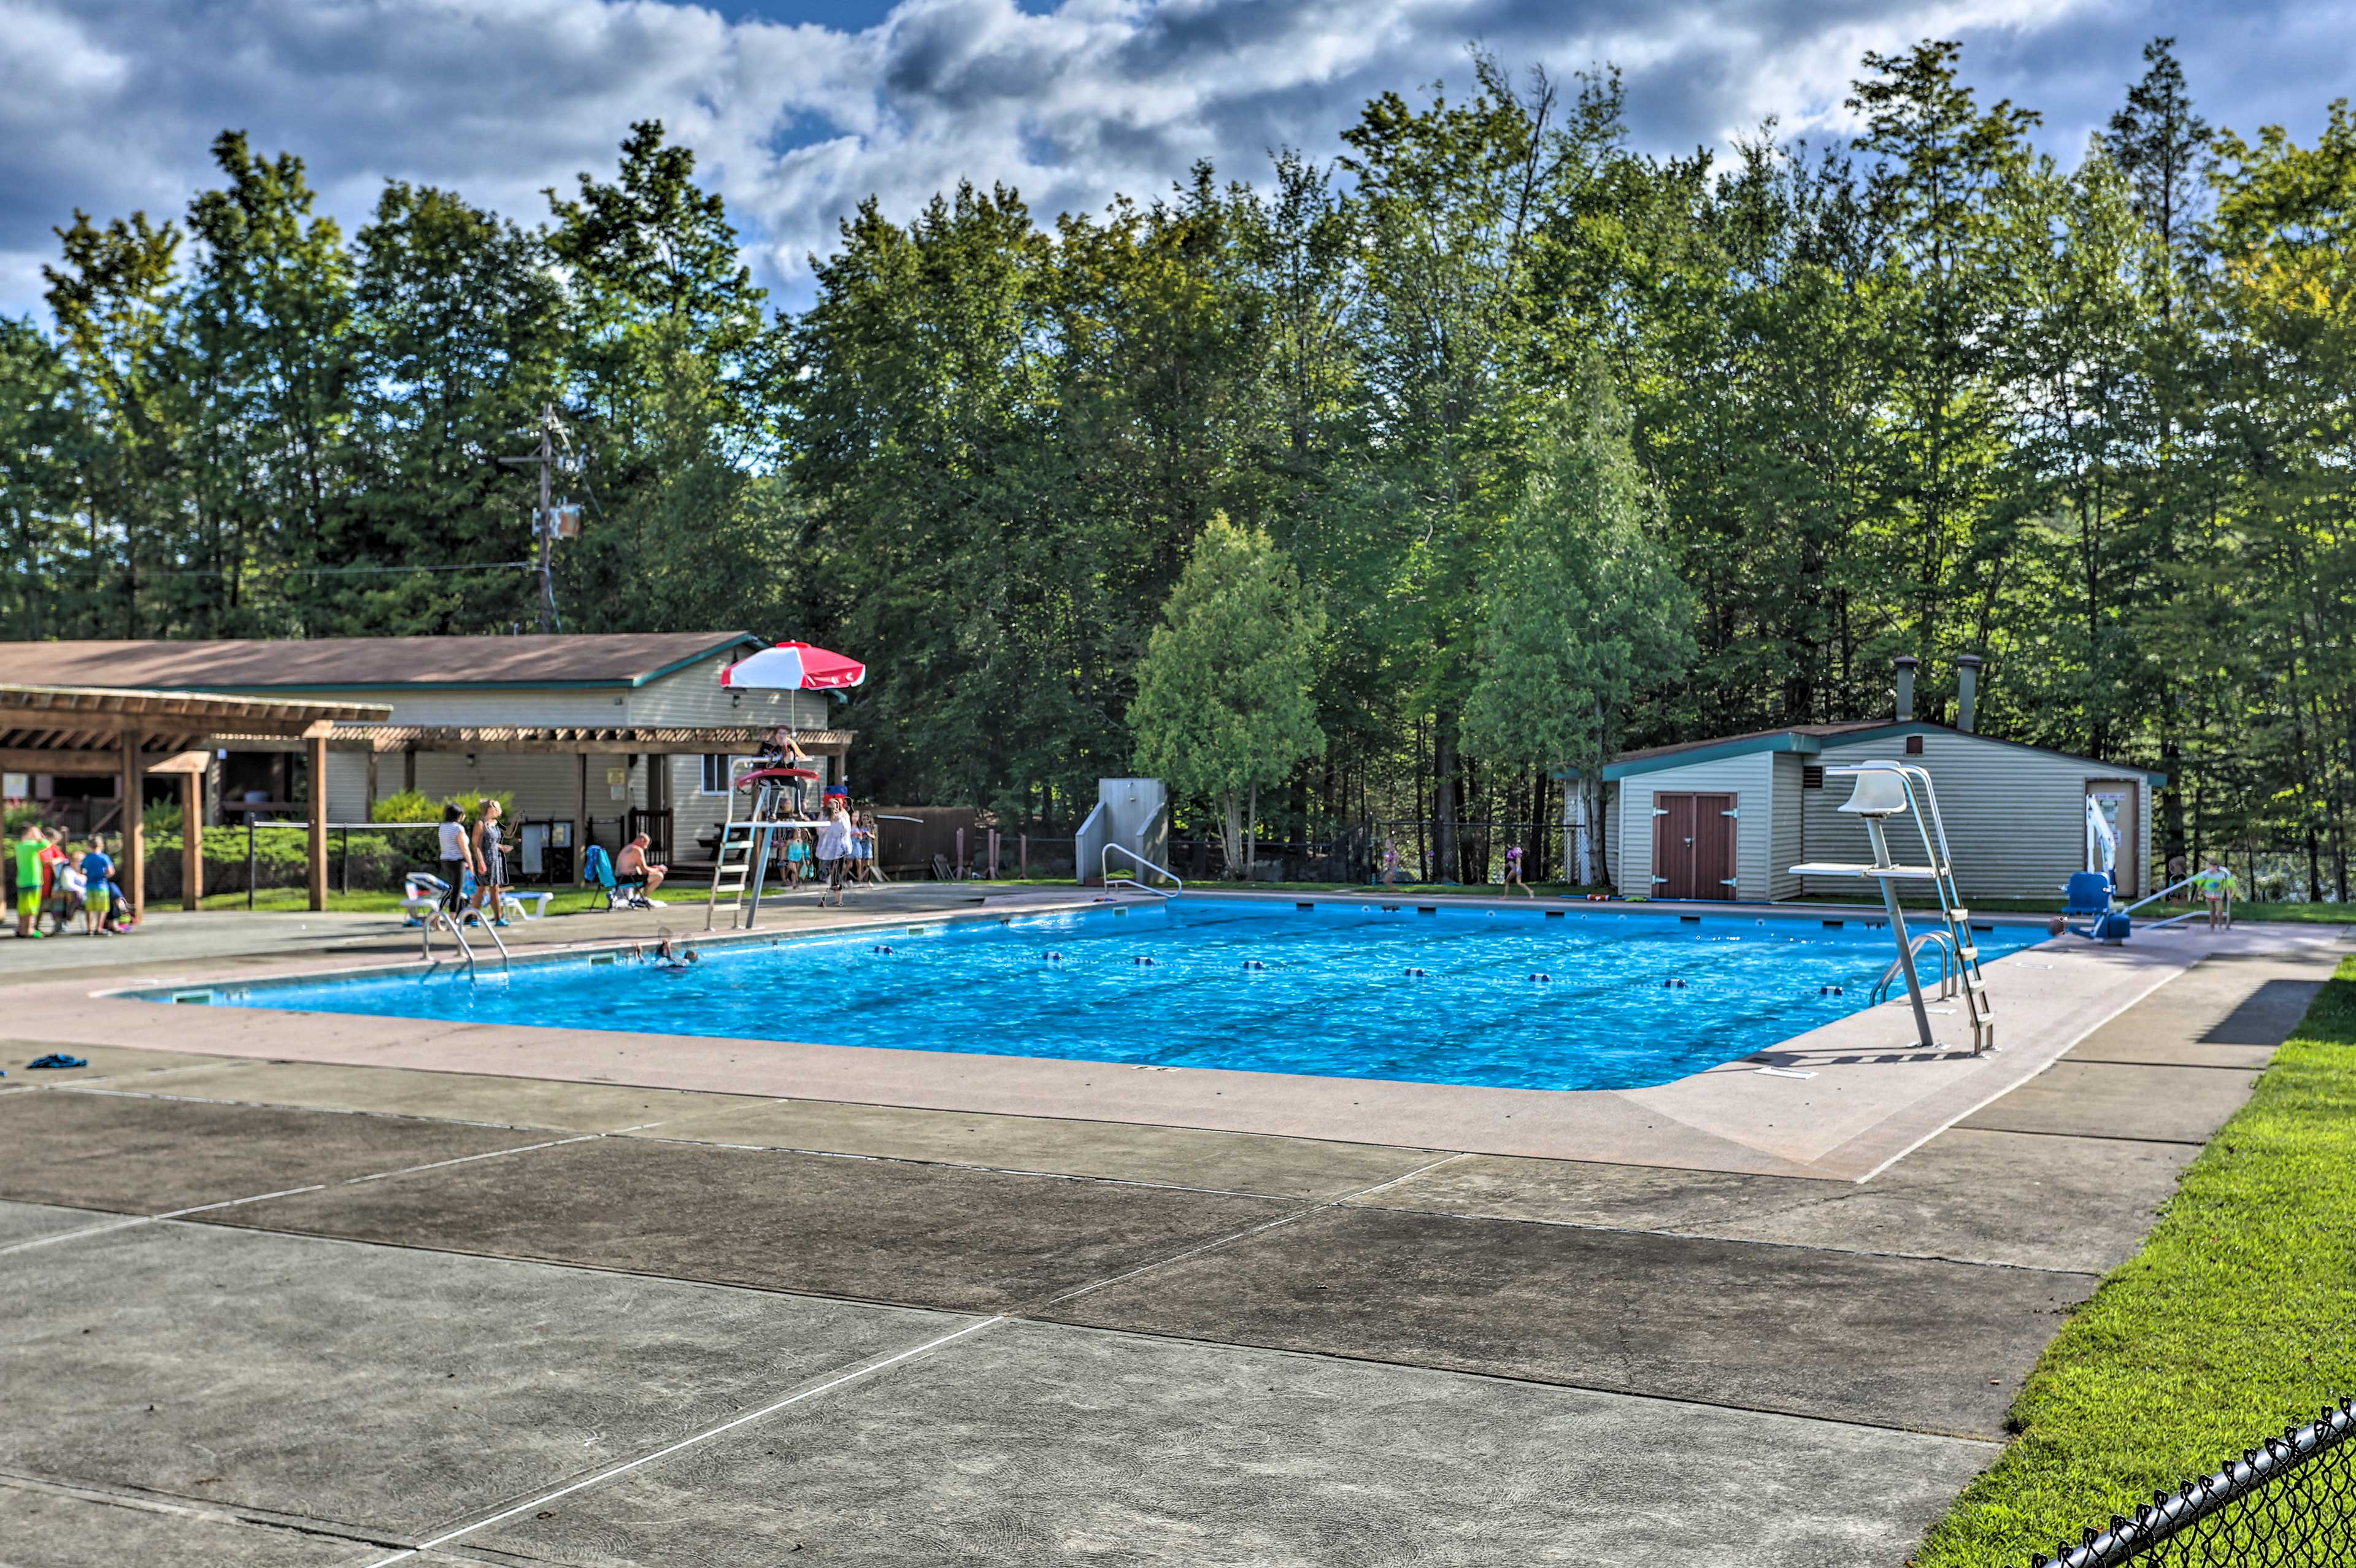 Make a splash in the in-ground pool.